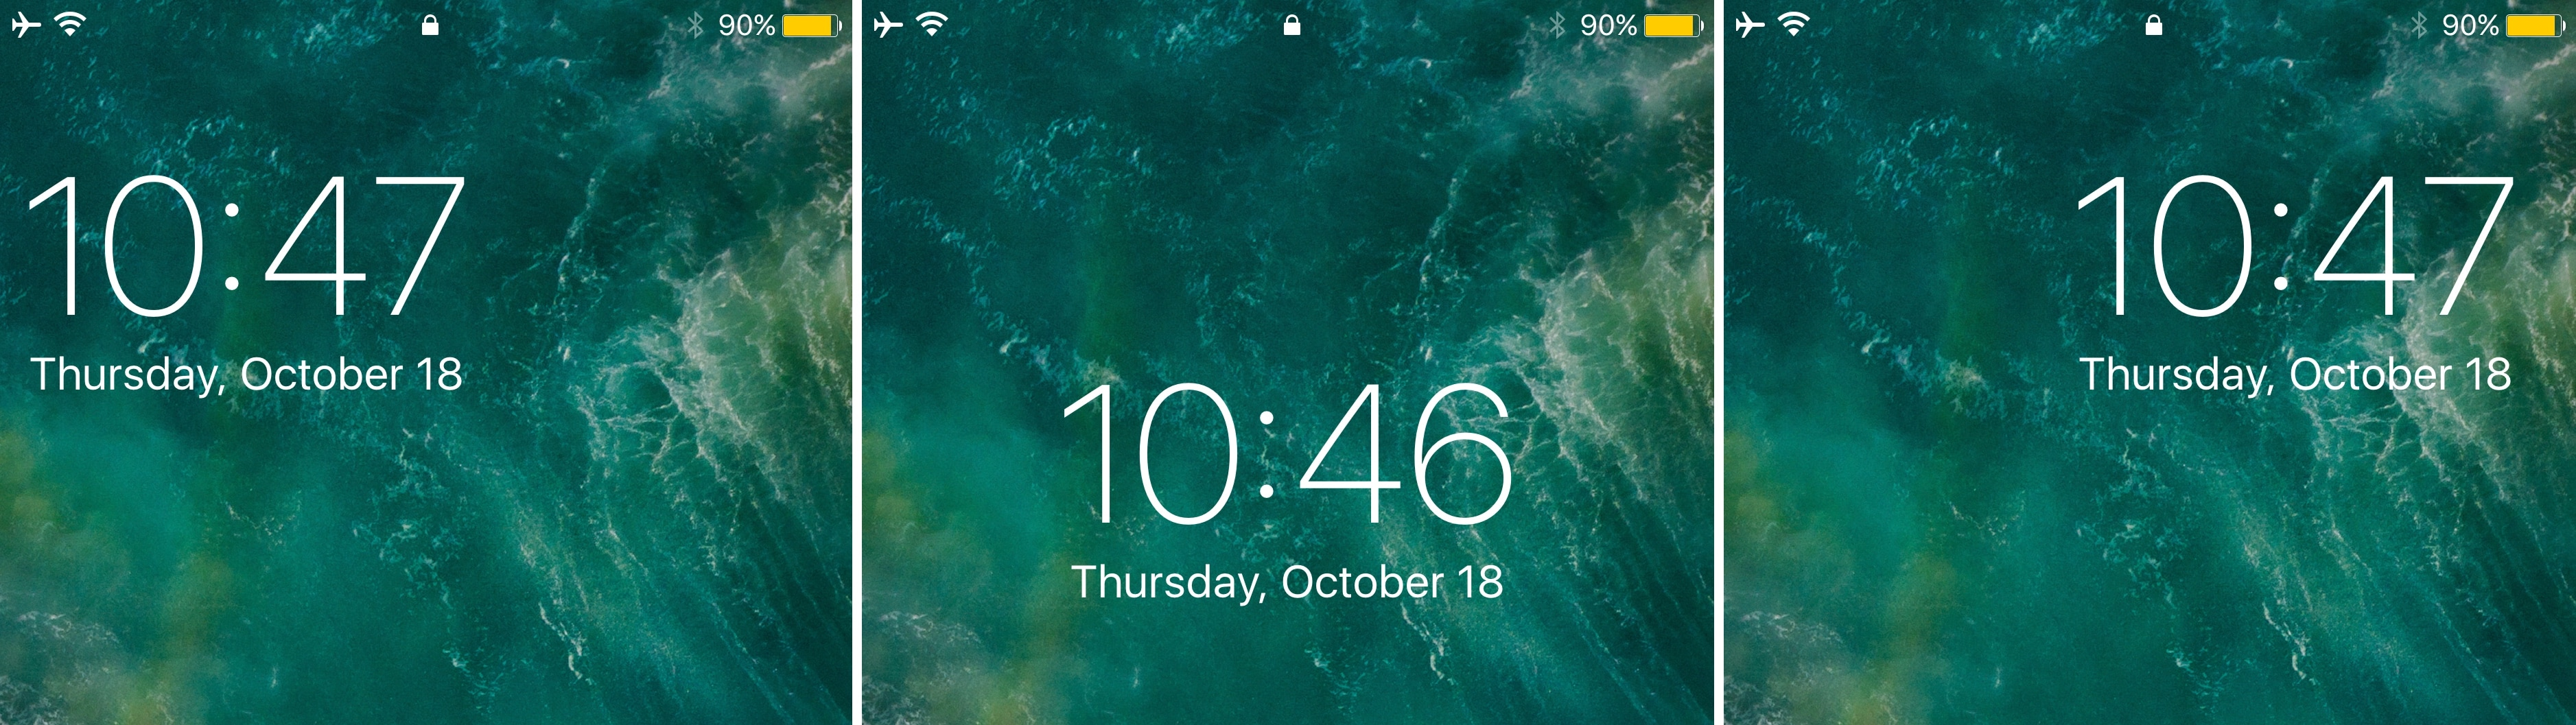 Relocate The Lock Screen S Date And Time Indicator With